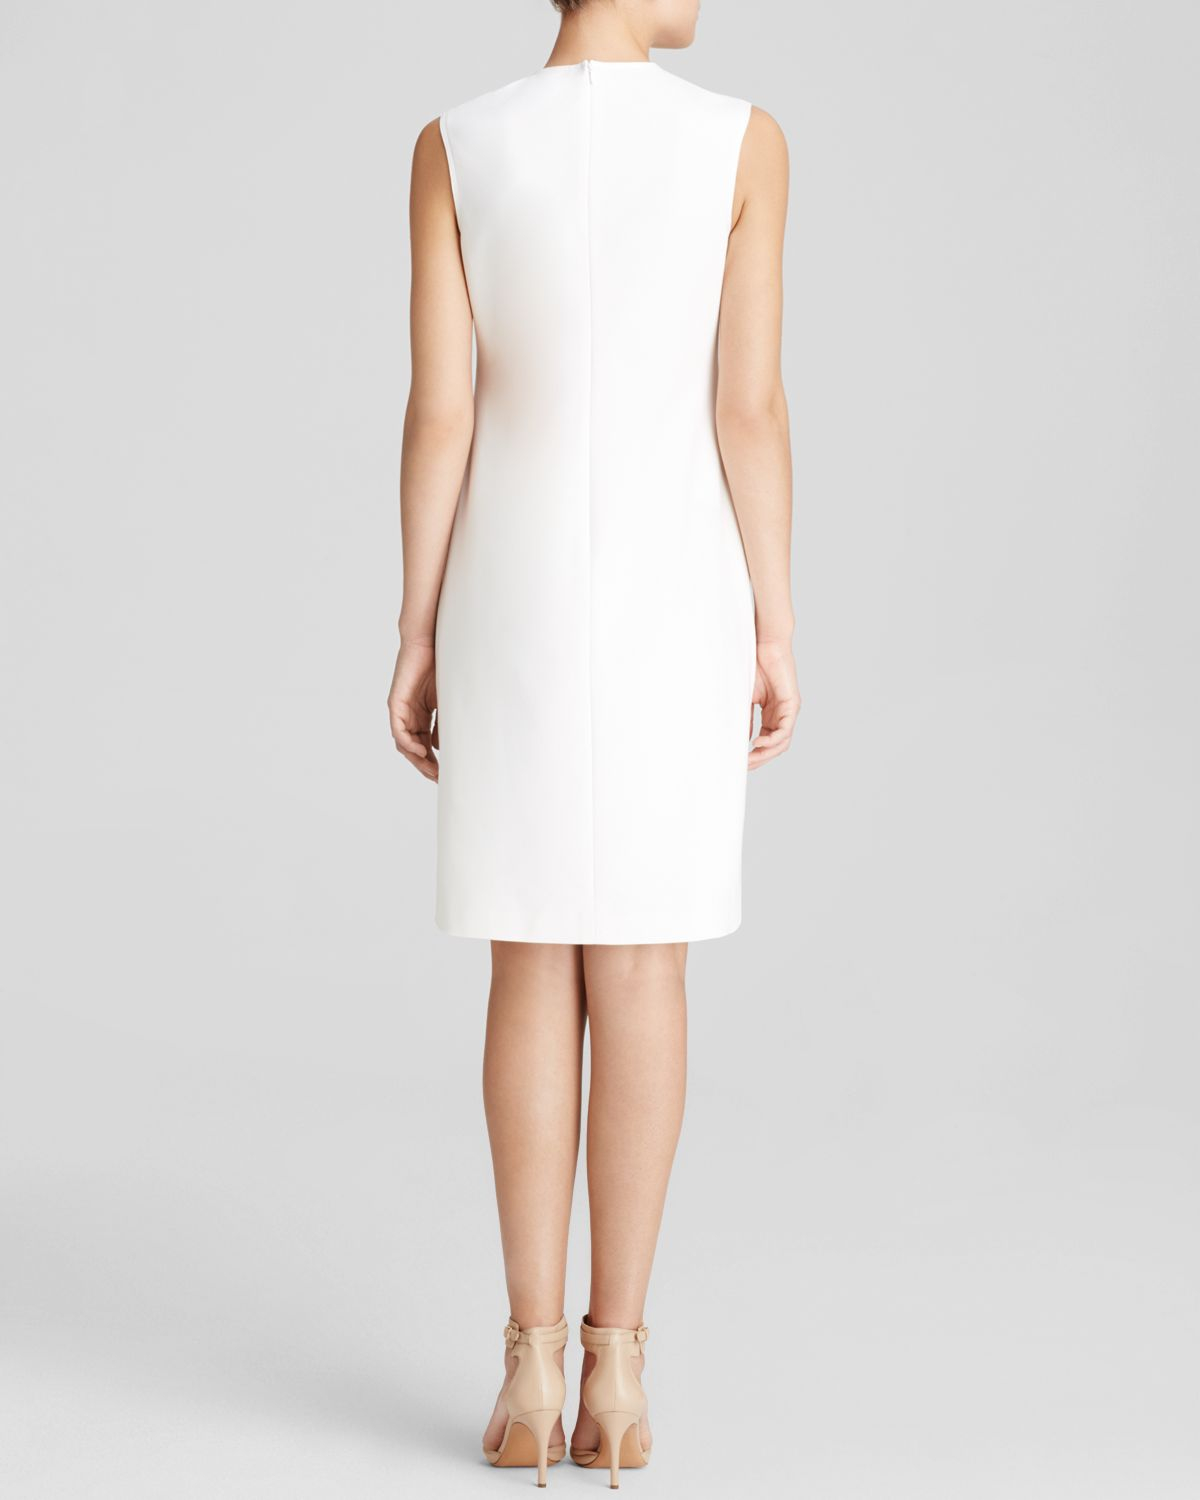 7d6002a9 Anne Klein Dress - Sleeveless High Neck Crepe Shift in White - Lyst